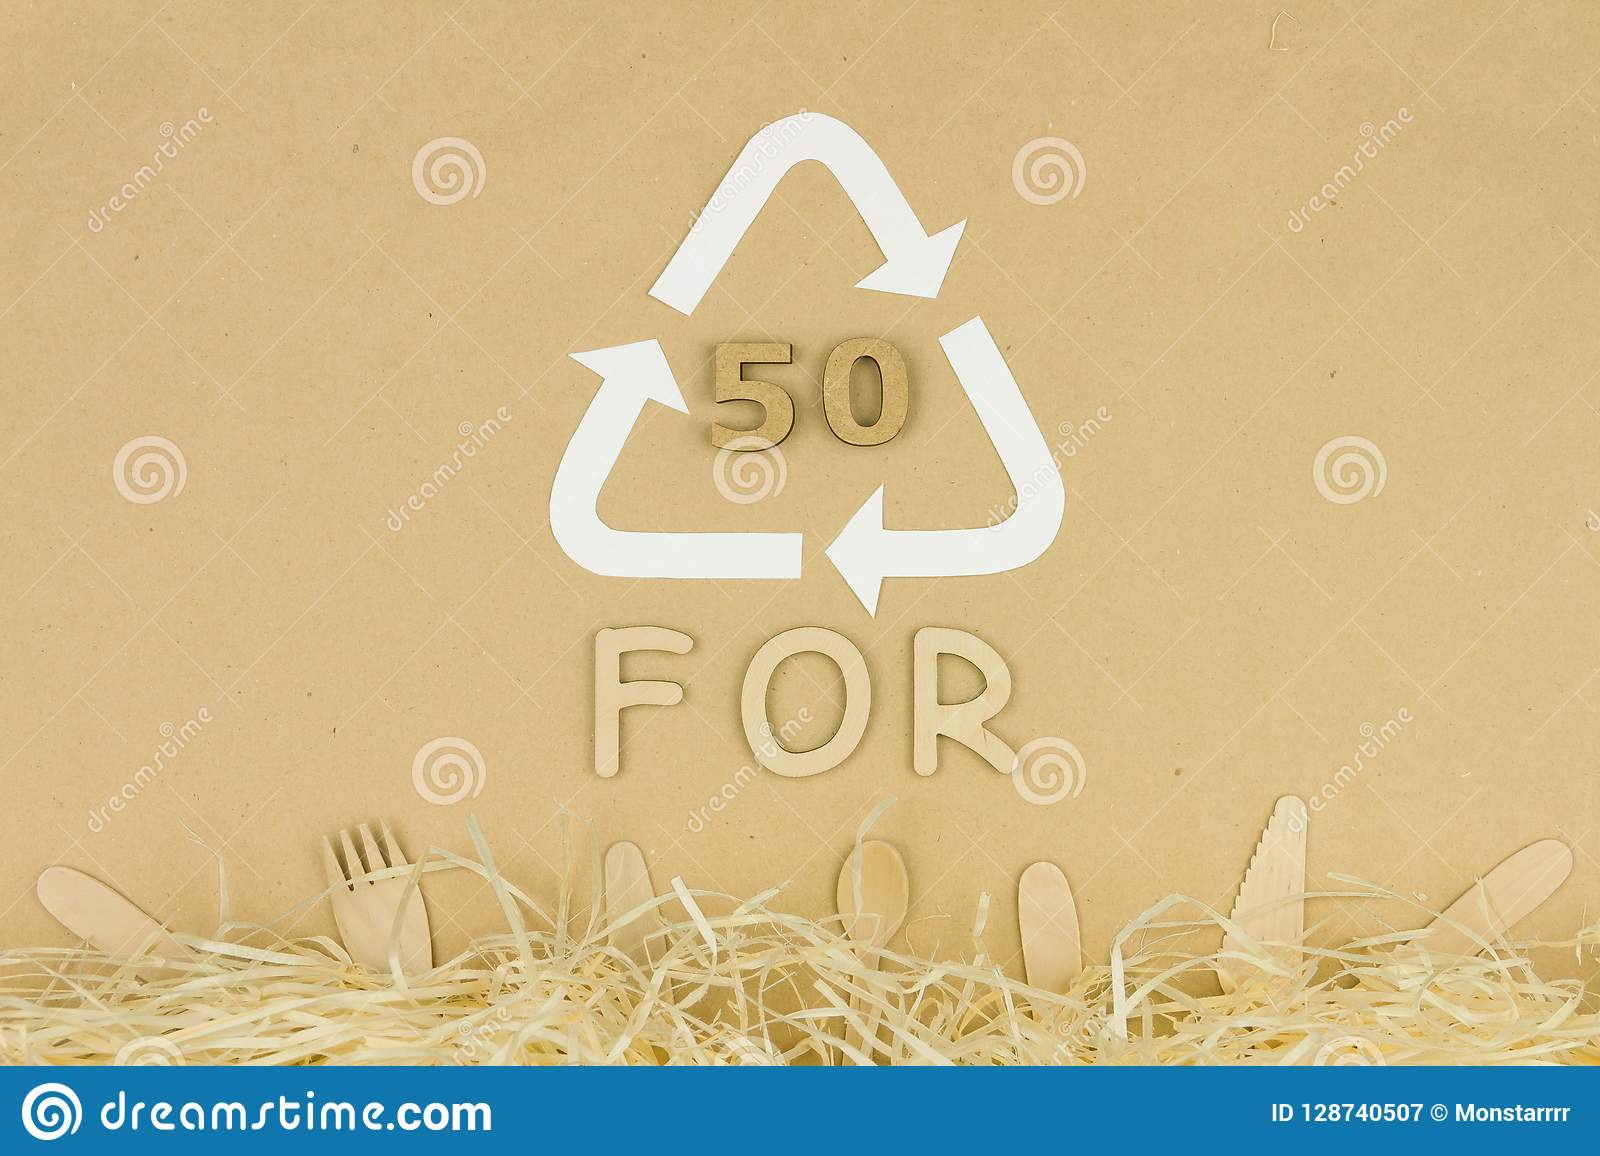 Environment trash care recycle reuse refuse concept